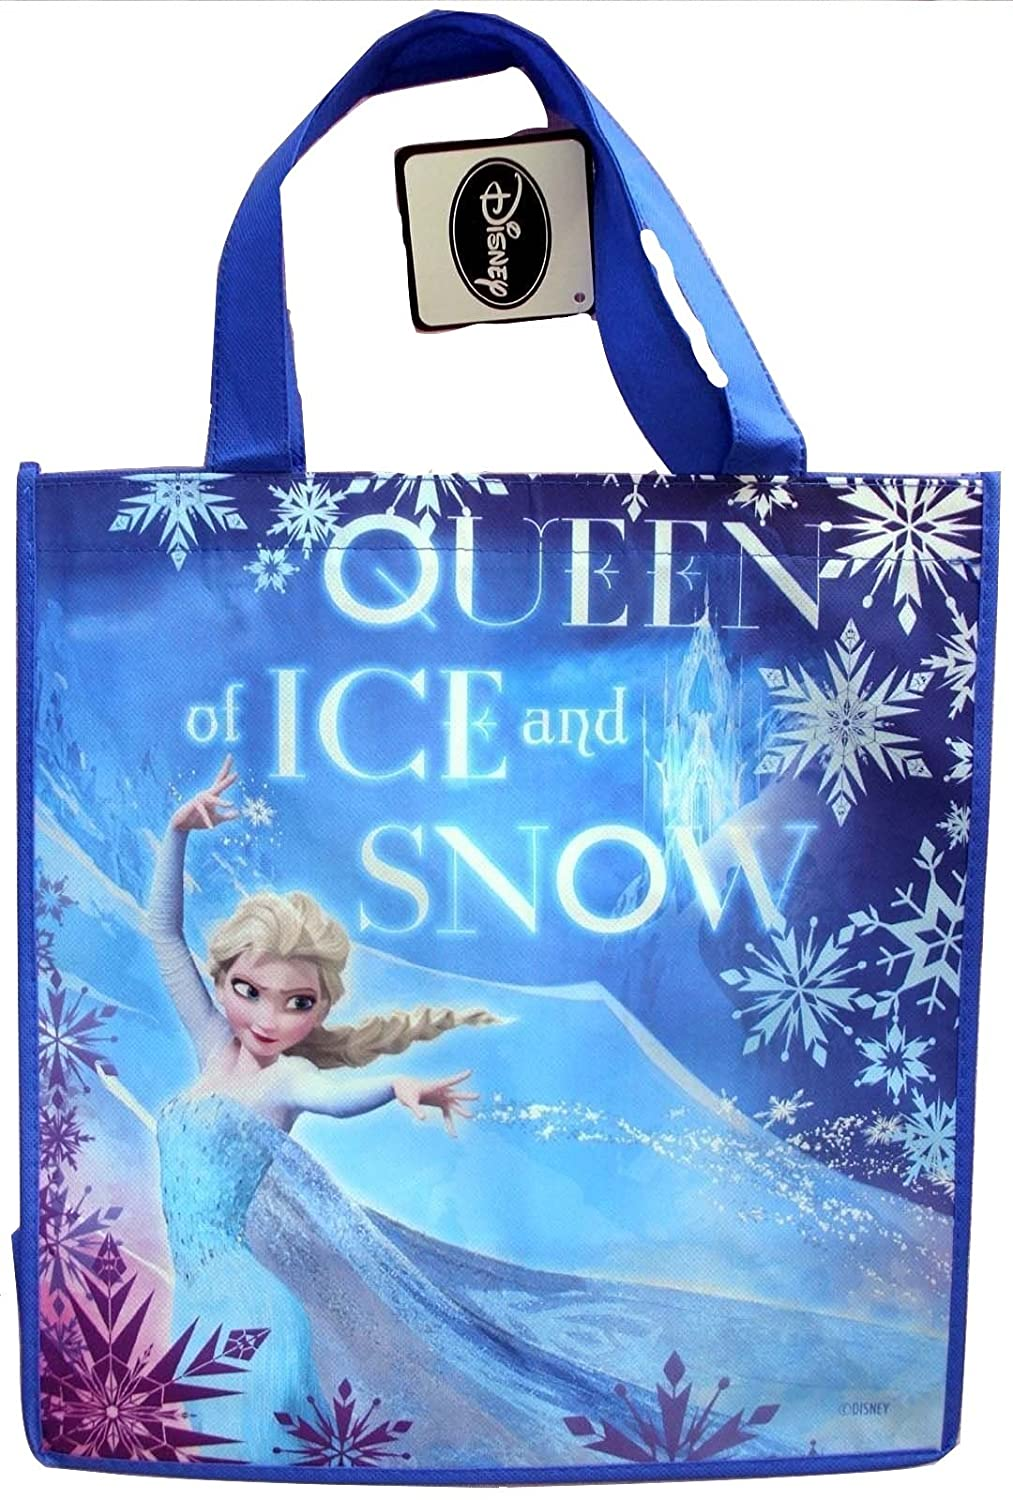 Disney Frozen Queen of Ice and Snow Elsa Tote Bag